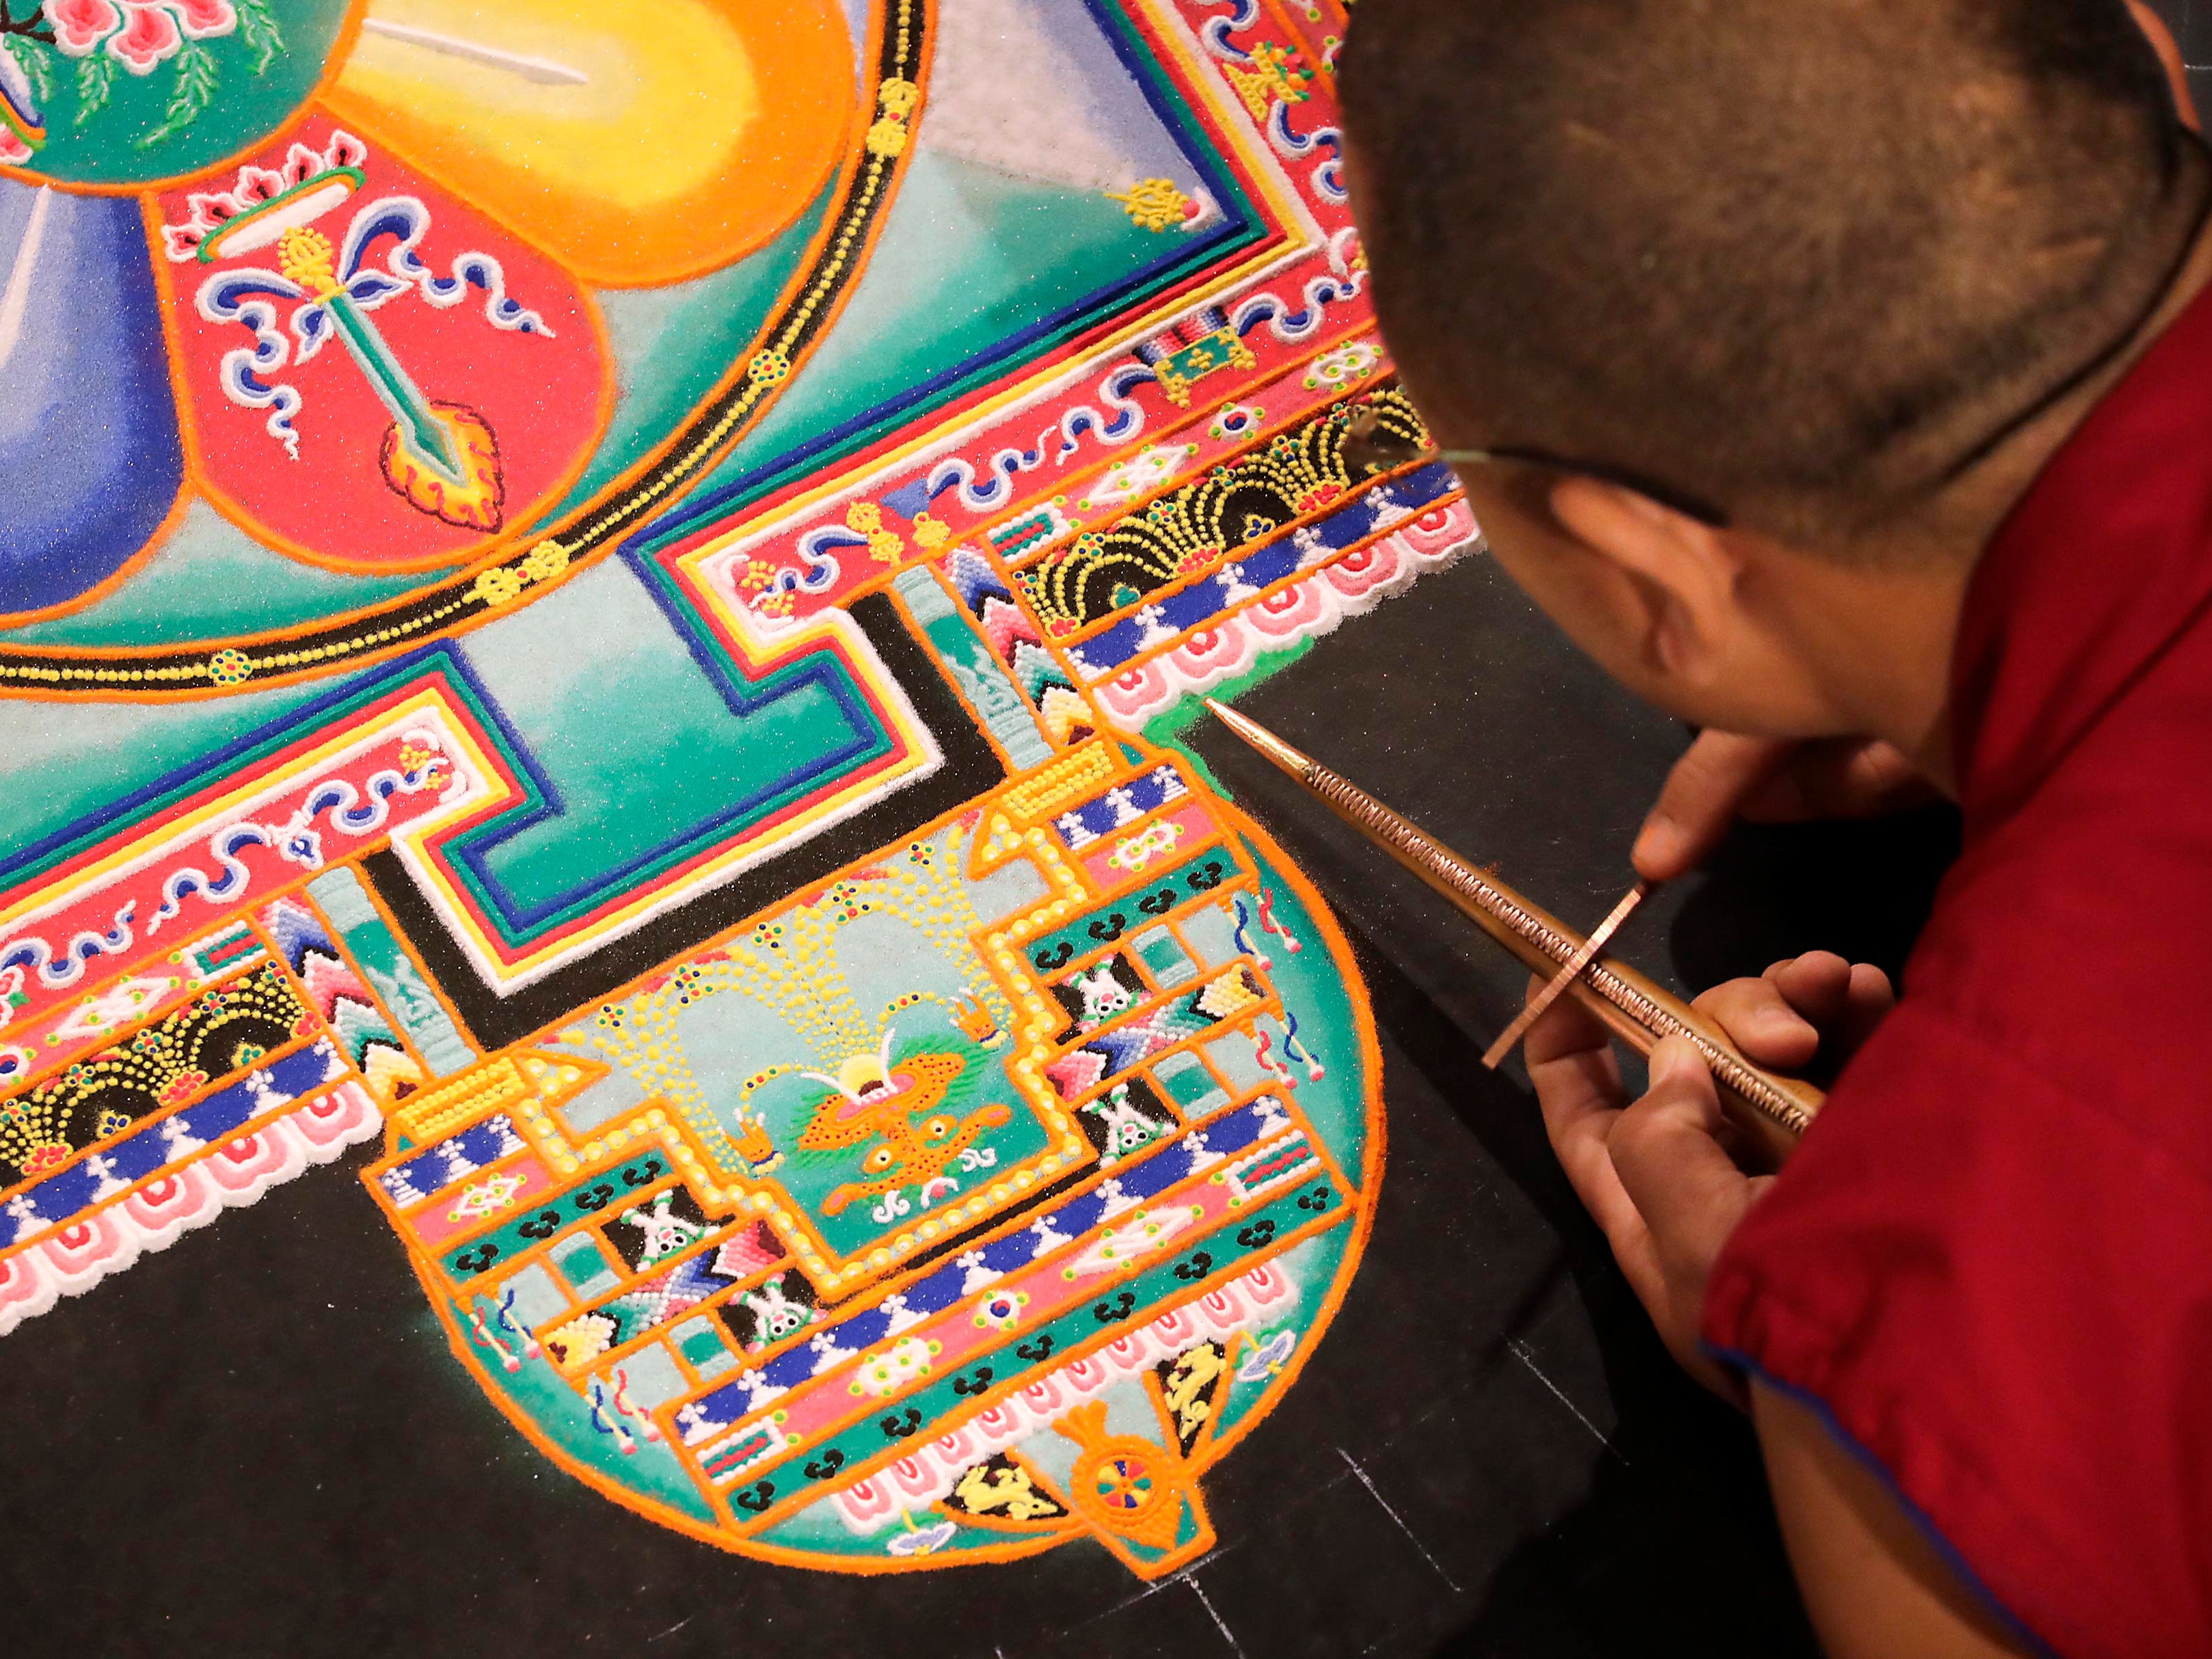 """Tenzin Sangay, a Buddhist monk, creates vibration of sand in a metal funnel that drops millions of grains of sand to crate the mandala. Buddhist monks from the Drepung Loseling Monastery, mix bowls of colorful sand and use funnels to apply the sand and create a  sand mandala in the center of Milwaukee's City Hall, Thursday, April 11, 2019.   The mandala represents the world in its divine form; on the inner level, they represent a map by which the ordinary human mind is transformed into enlightened mind; and on the secret level, they depict the primordially perfect balance of the subtle energies of the body and the clear light dimension of the mind. The creation of a sand painting is said to effect purification and healing on these three levels.  The display ends with a closing ceremony Friday at 5 p.m. where the sand """"painting"""" will be destroyed and vials of sand shared with attendees. For more information go to www.earlymusicnow.org"""